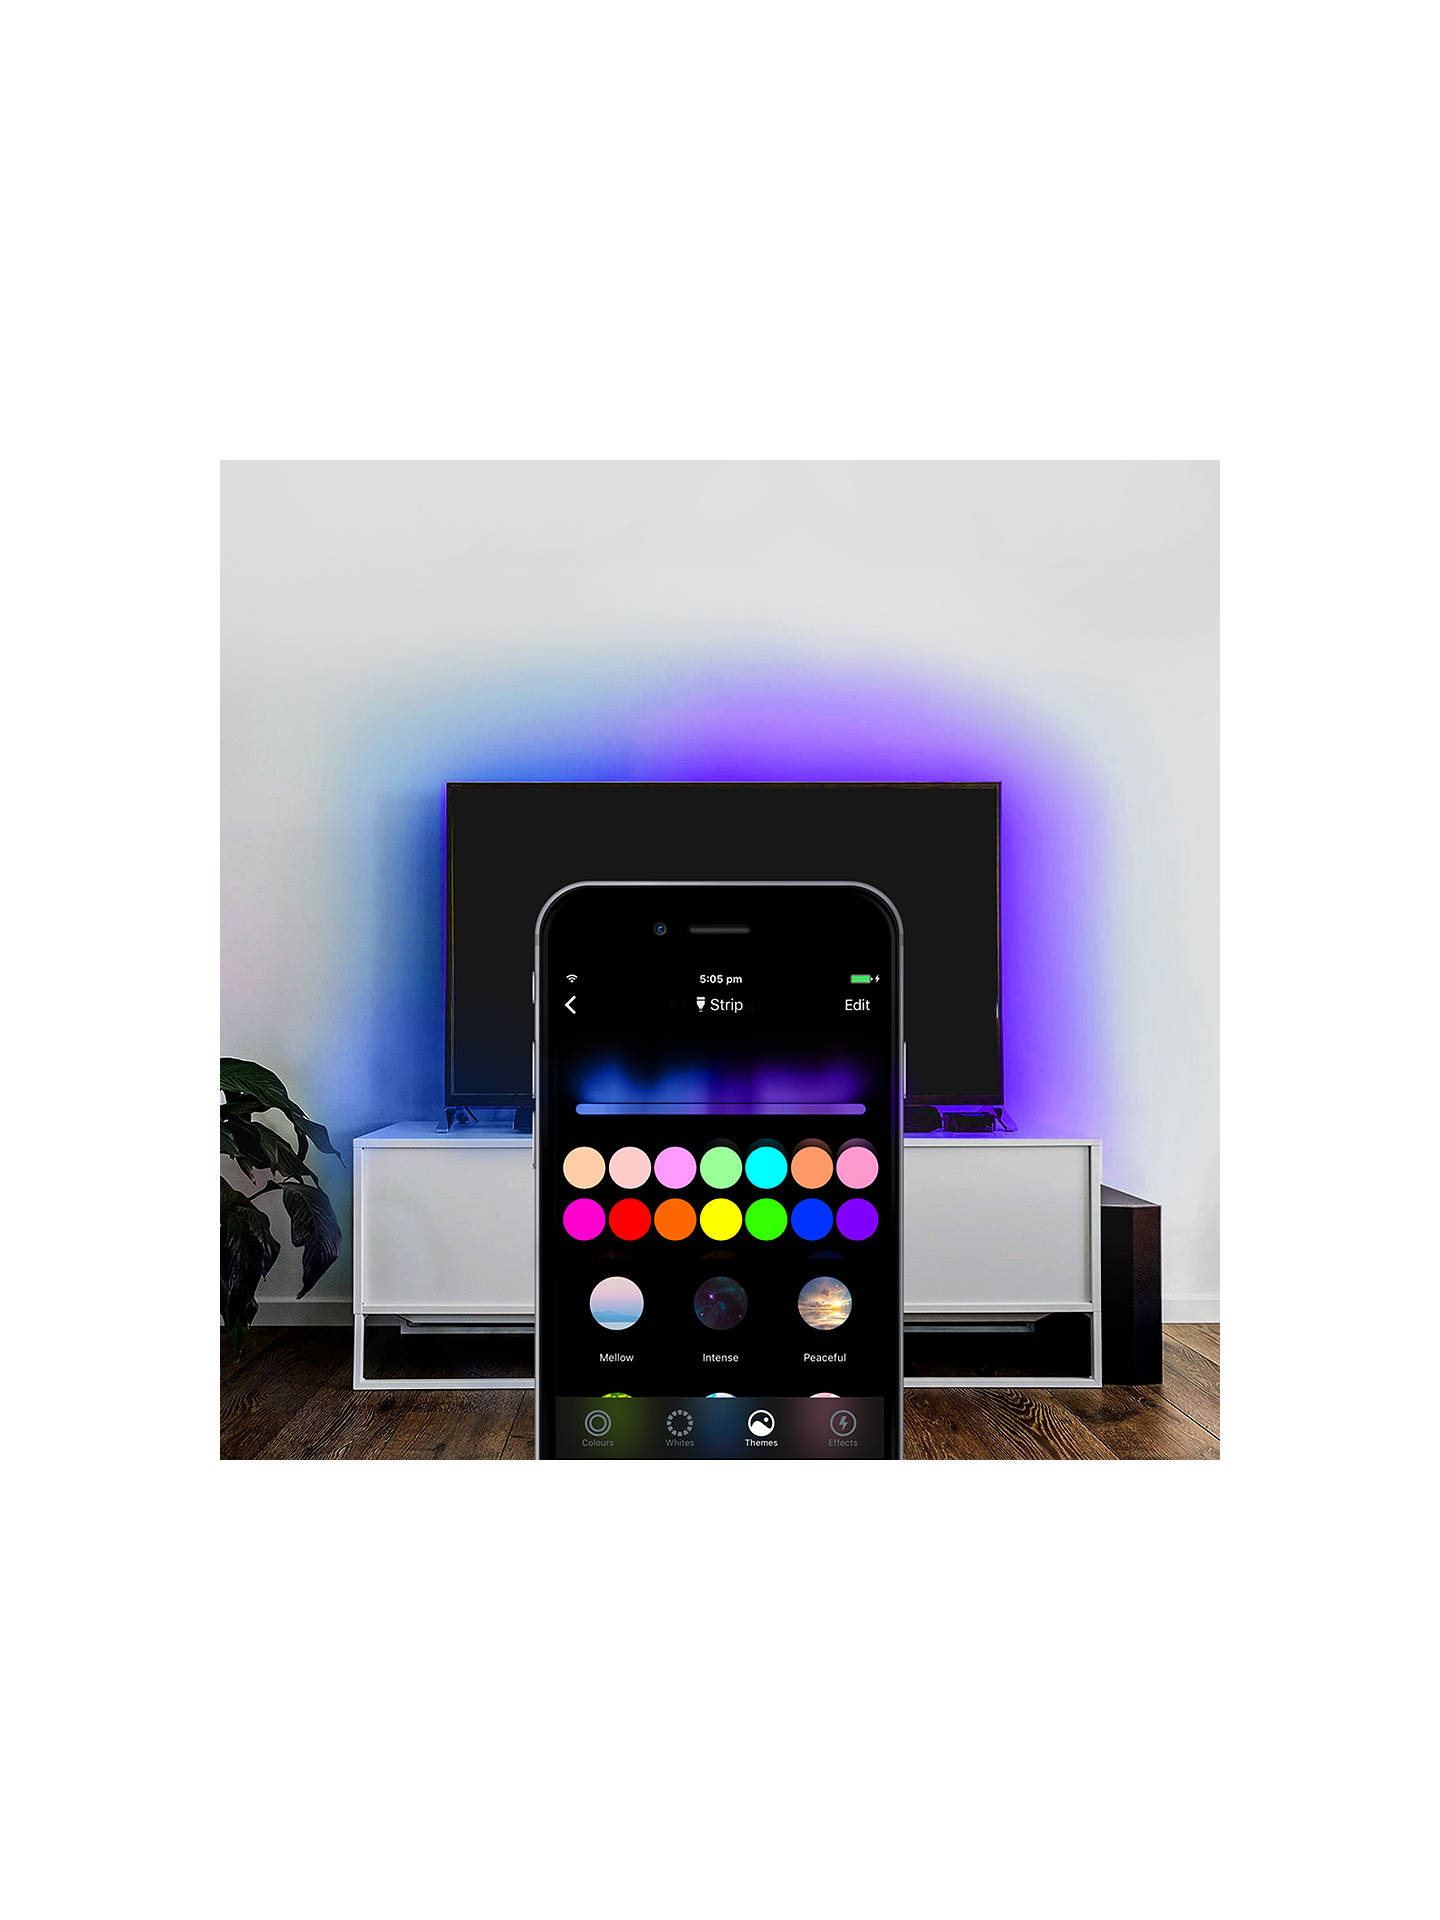 LIFX Z White and Colour Wireless Smart Lighting Adjustable Colour Changing  LED Light Strip & Base Starter Kit with Built-in Wi-Fi, 15W, 2 Metres